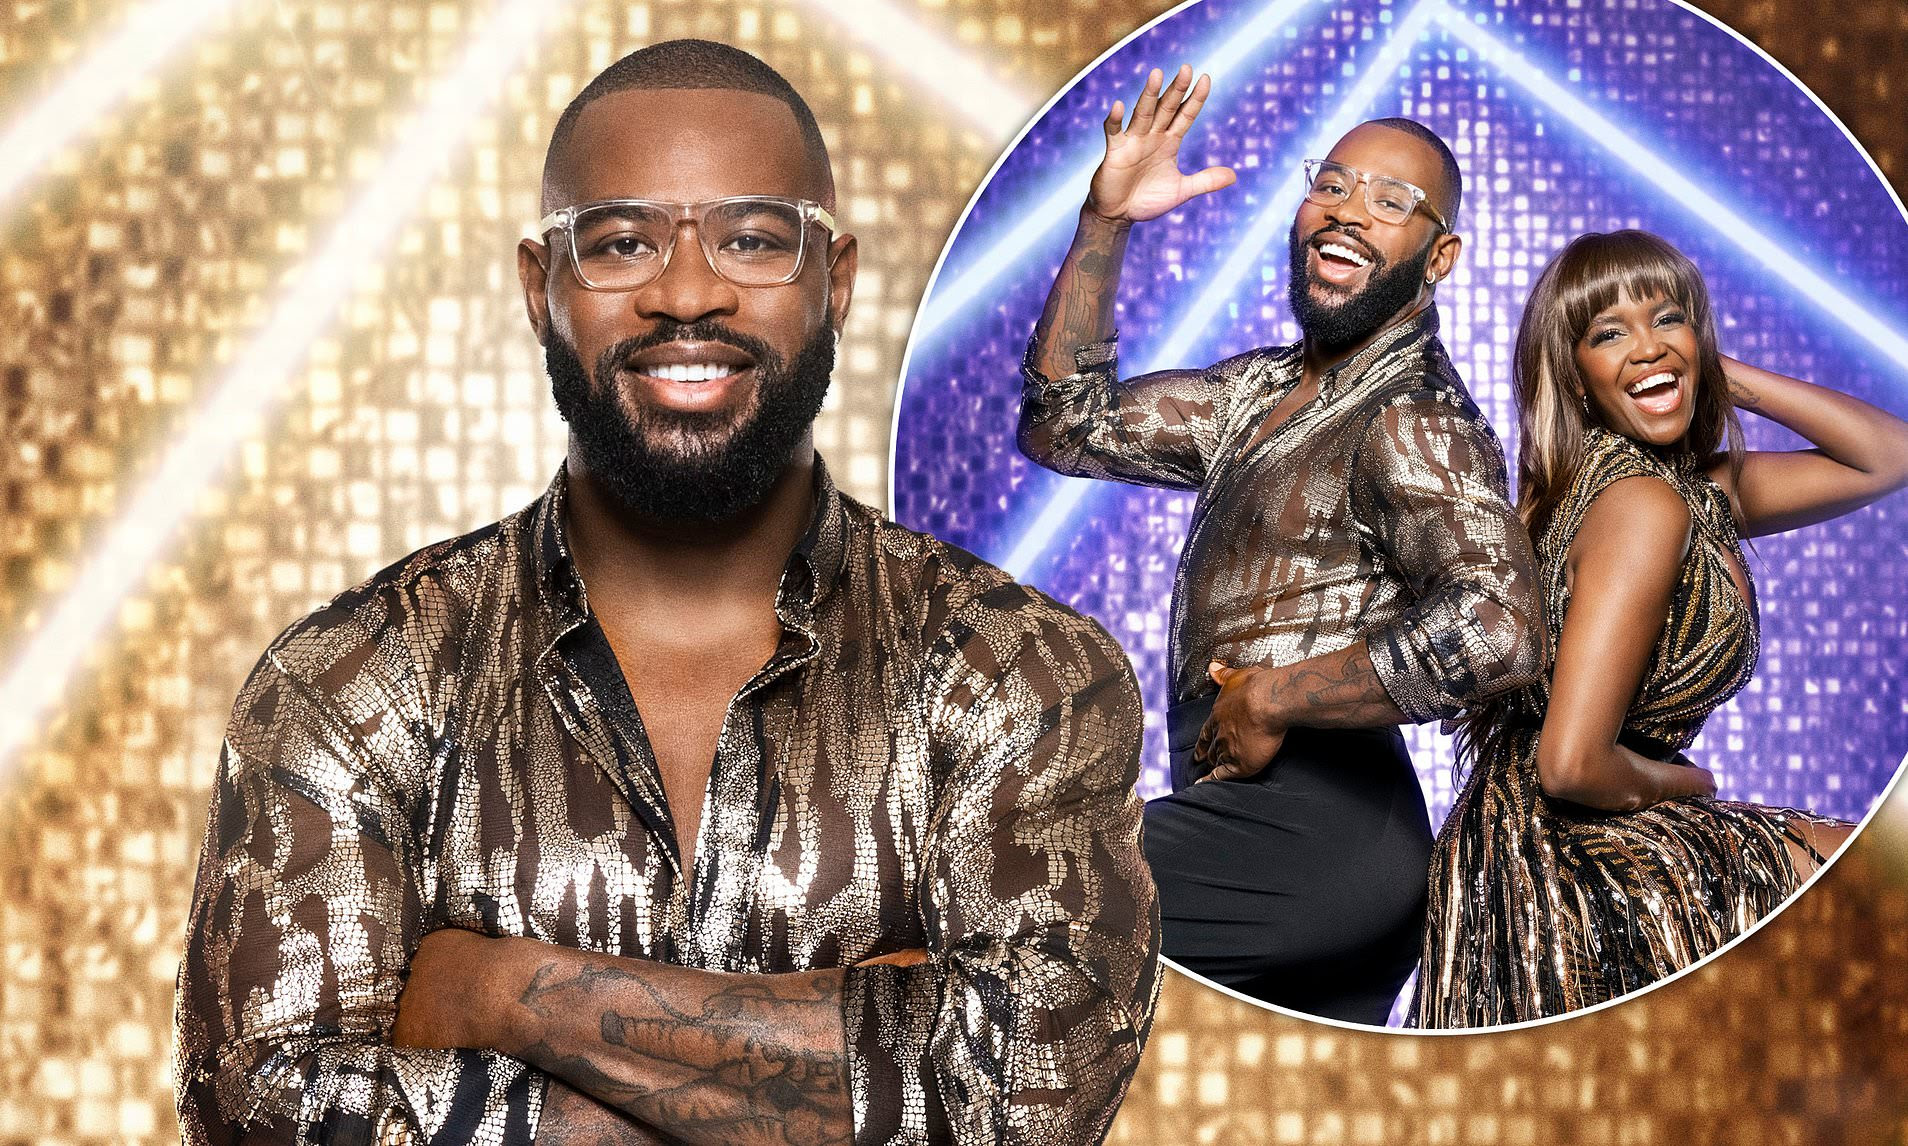 Strictly's Ugo Monye is forced to pull out of Saturday's live show